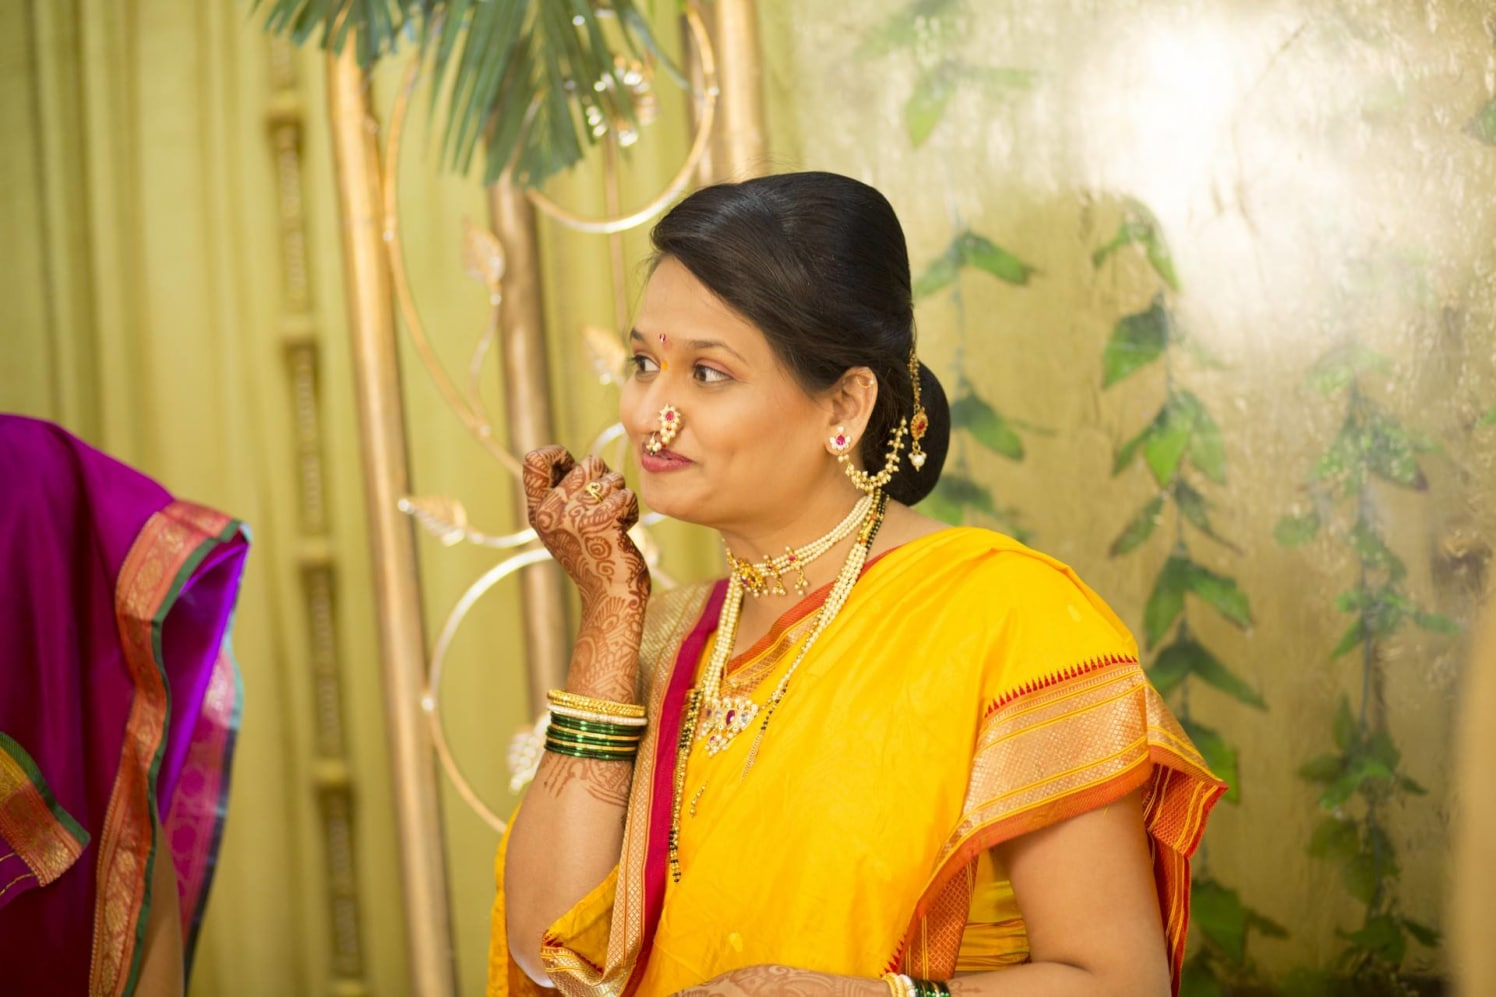 Marathi beauty at best by Cuttlefish Photography Wedding-photography | Weddings Photos & Ideas